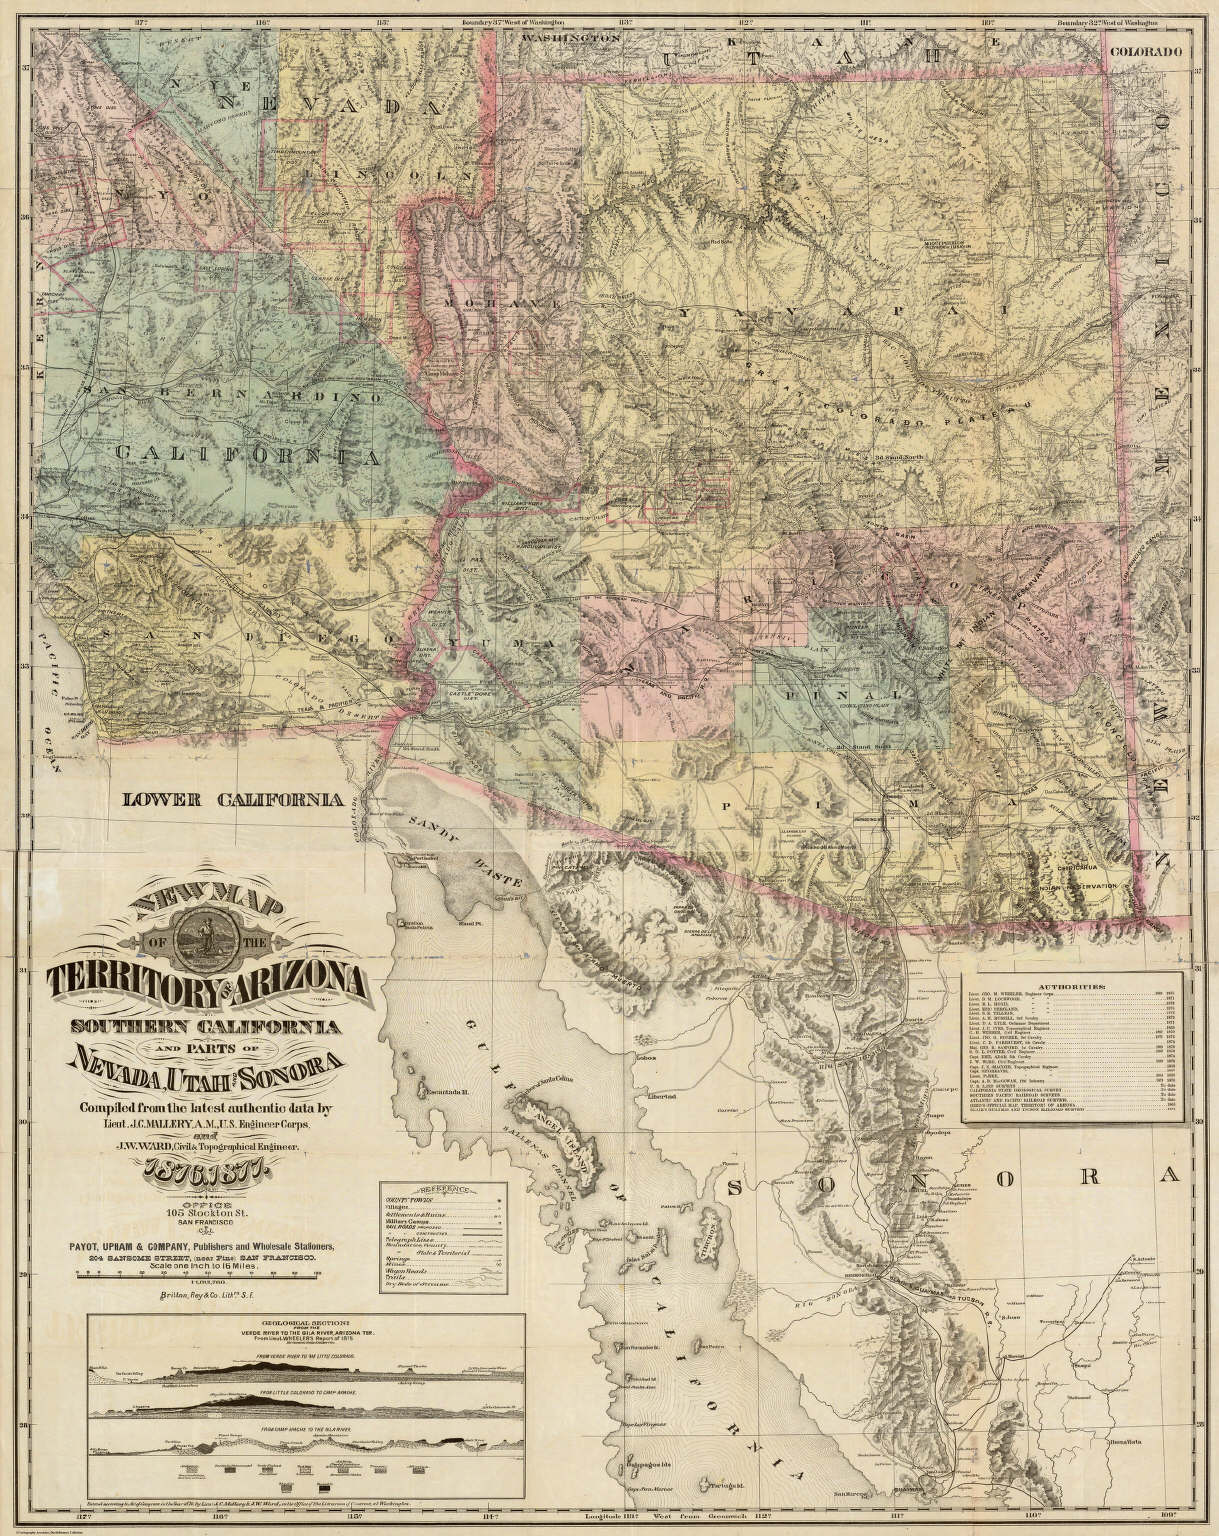 Map Of Arizona Utah Border.New Map Of The Territory Of Arizona Southern California And Parts